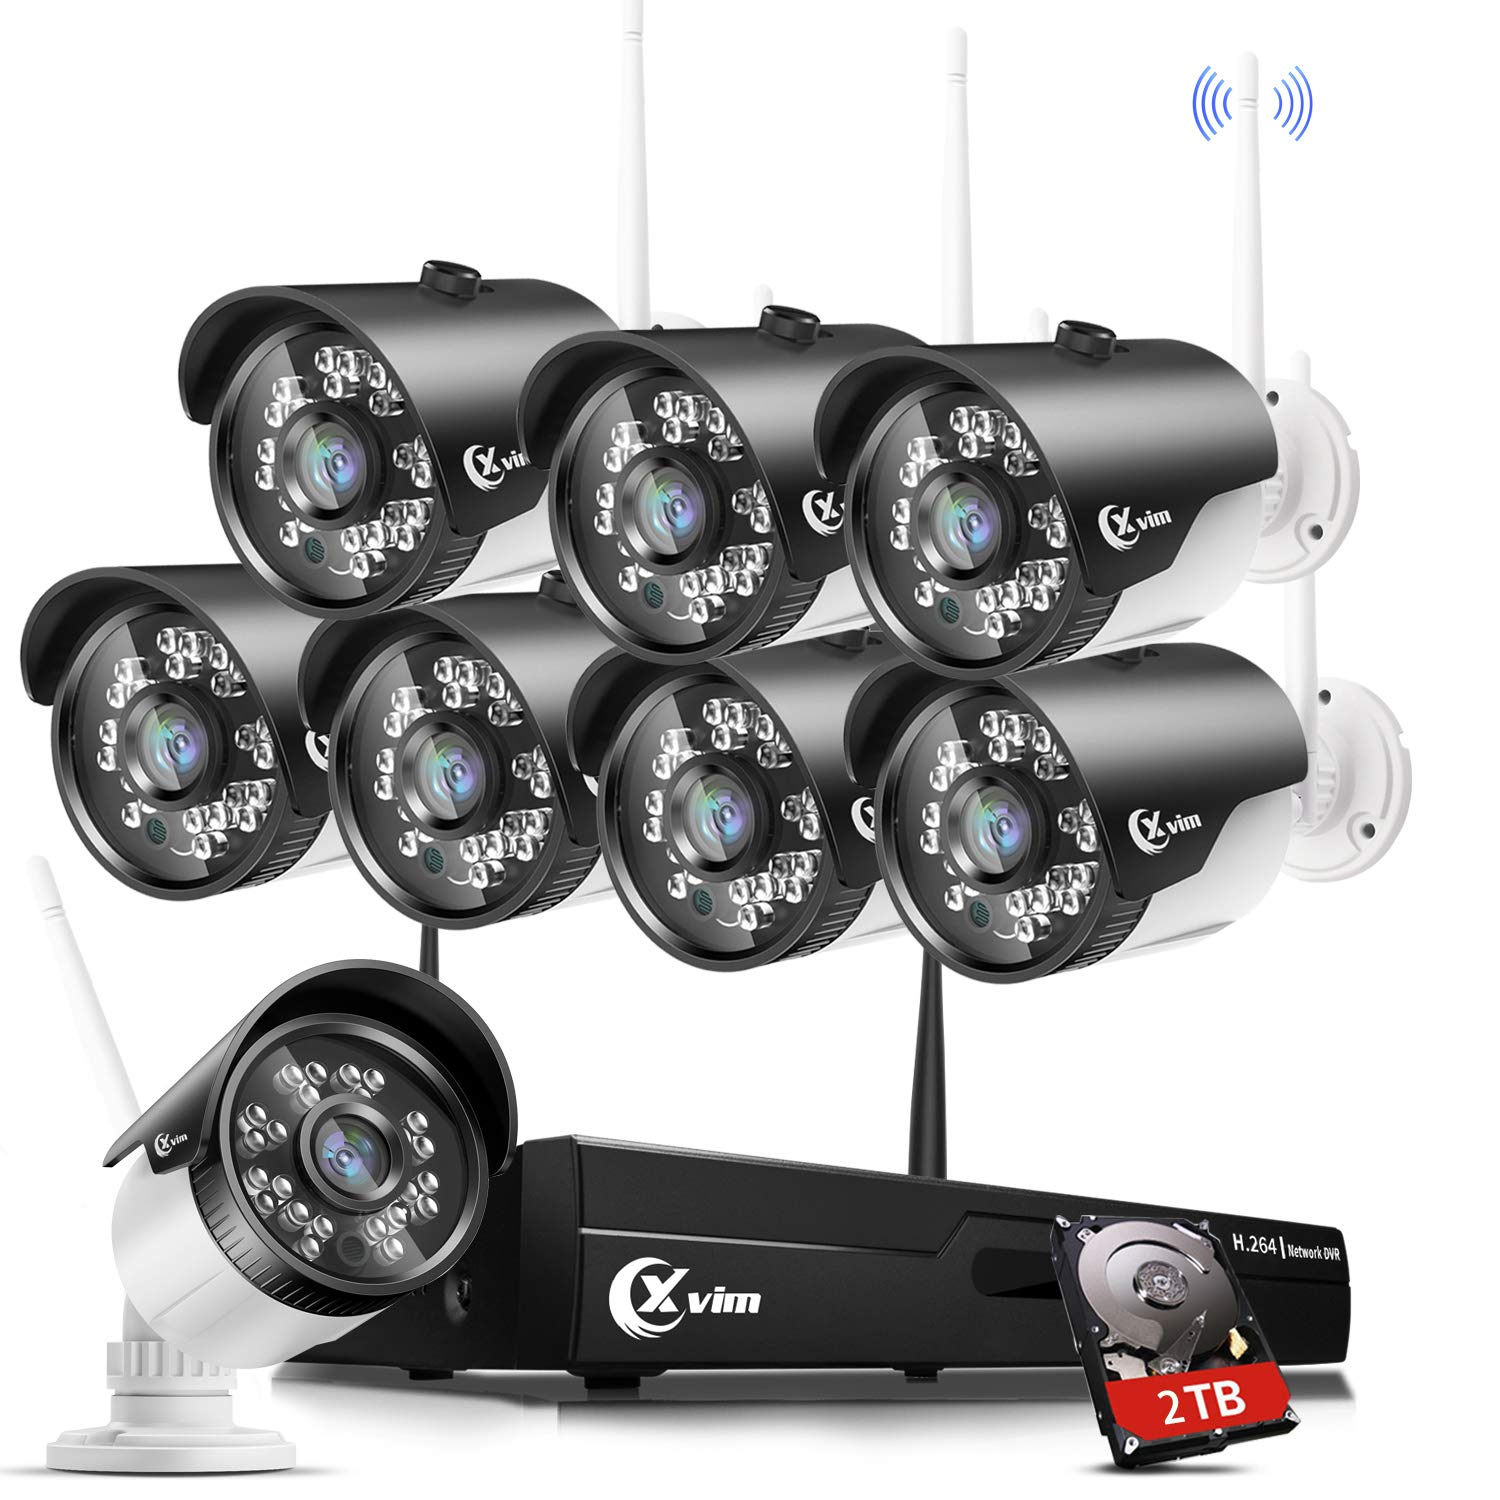 XVIM H.264 2MP Wireless Security Cameras System, 8CH 1080P HD NVR 8pcs 1080P Wireless Outdoor Indoor Waterproof Surveillance Cameras 85FT Night Vision (with 2TB HDD) by X-VIM